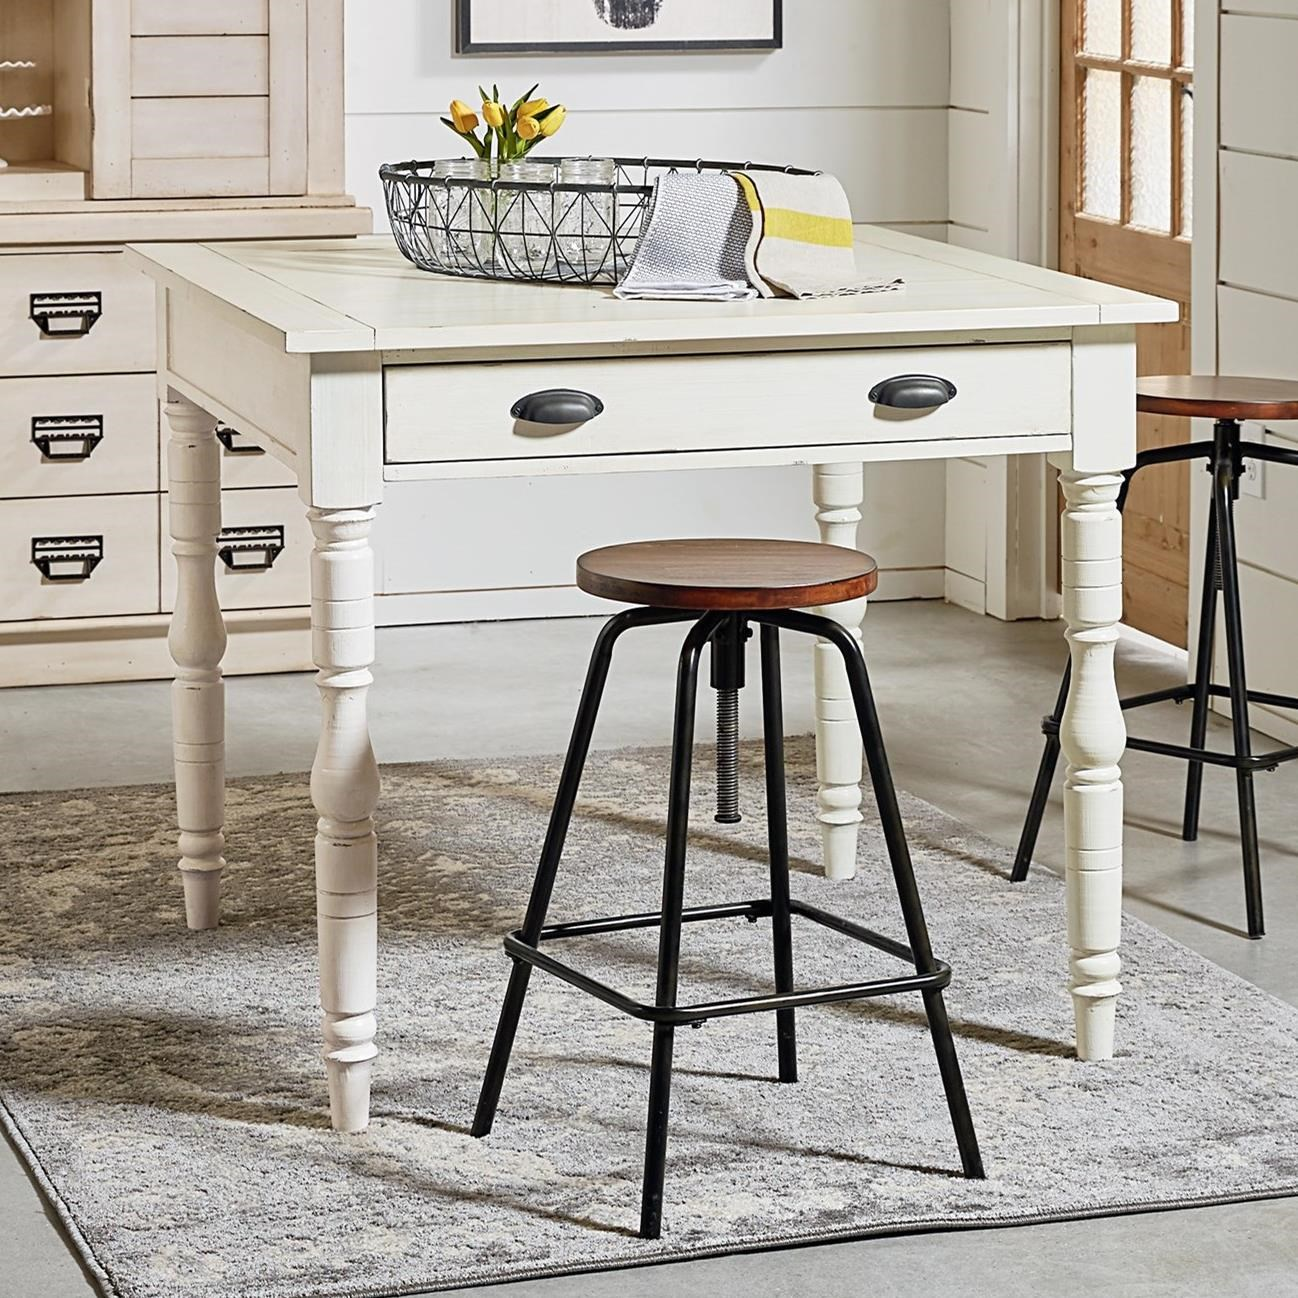 Primitive Kitchen Table And Chairs: Magnolia Home By Joanna Gaines Primitive Taper Turned